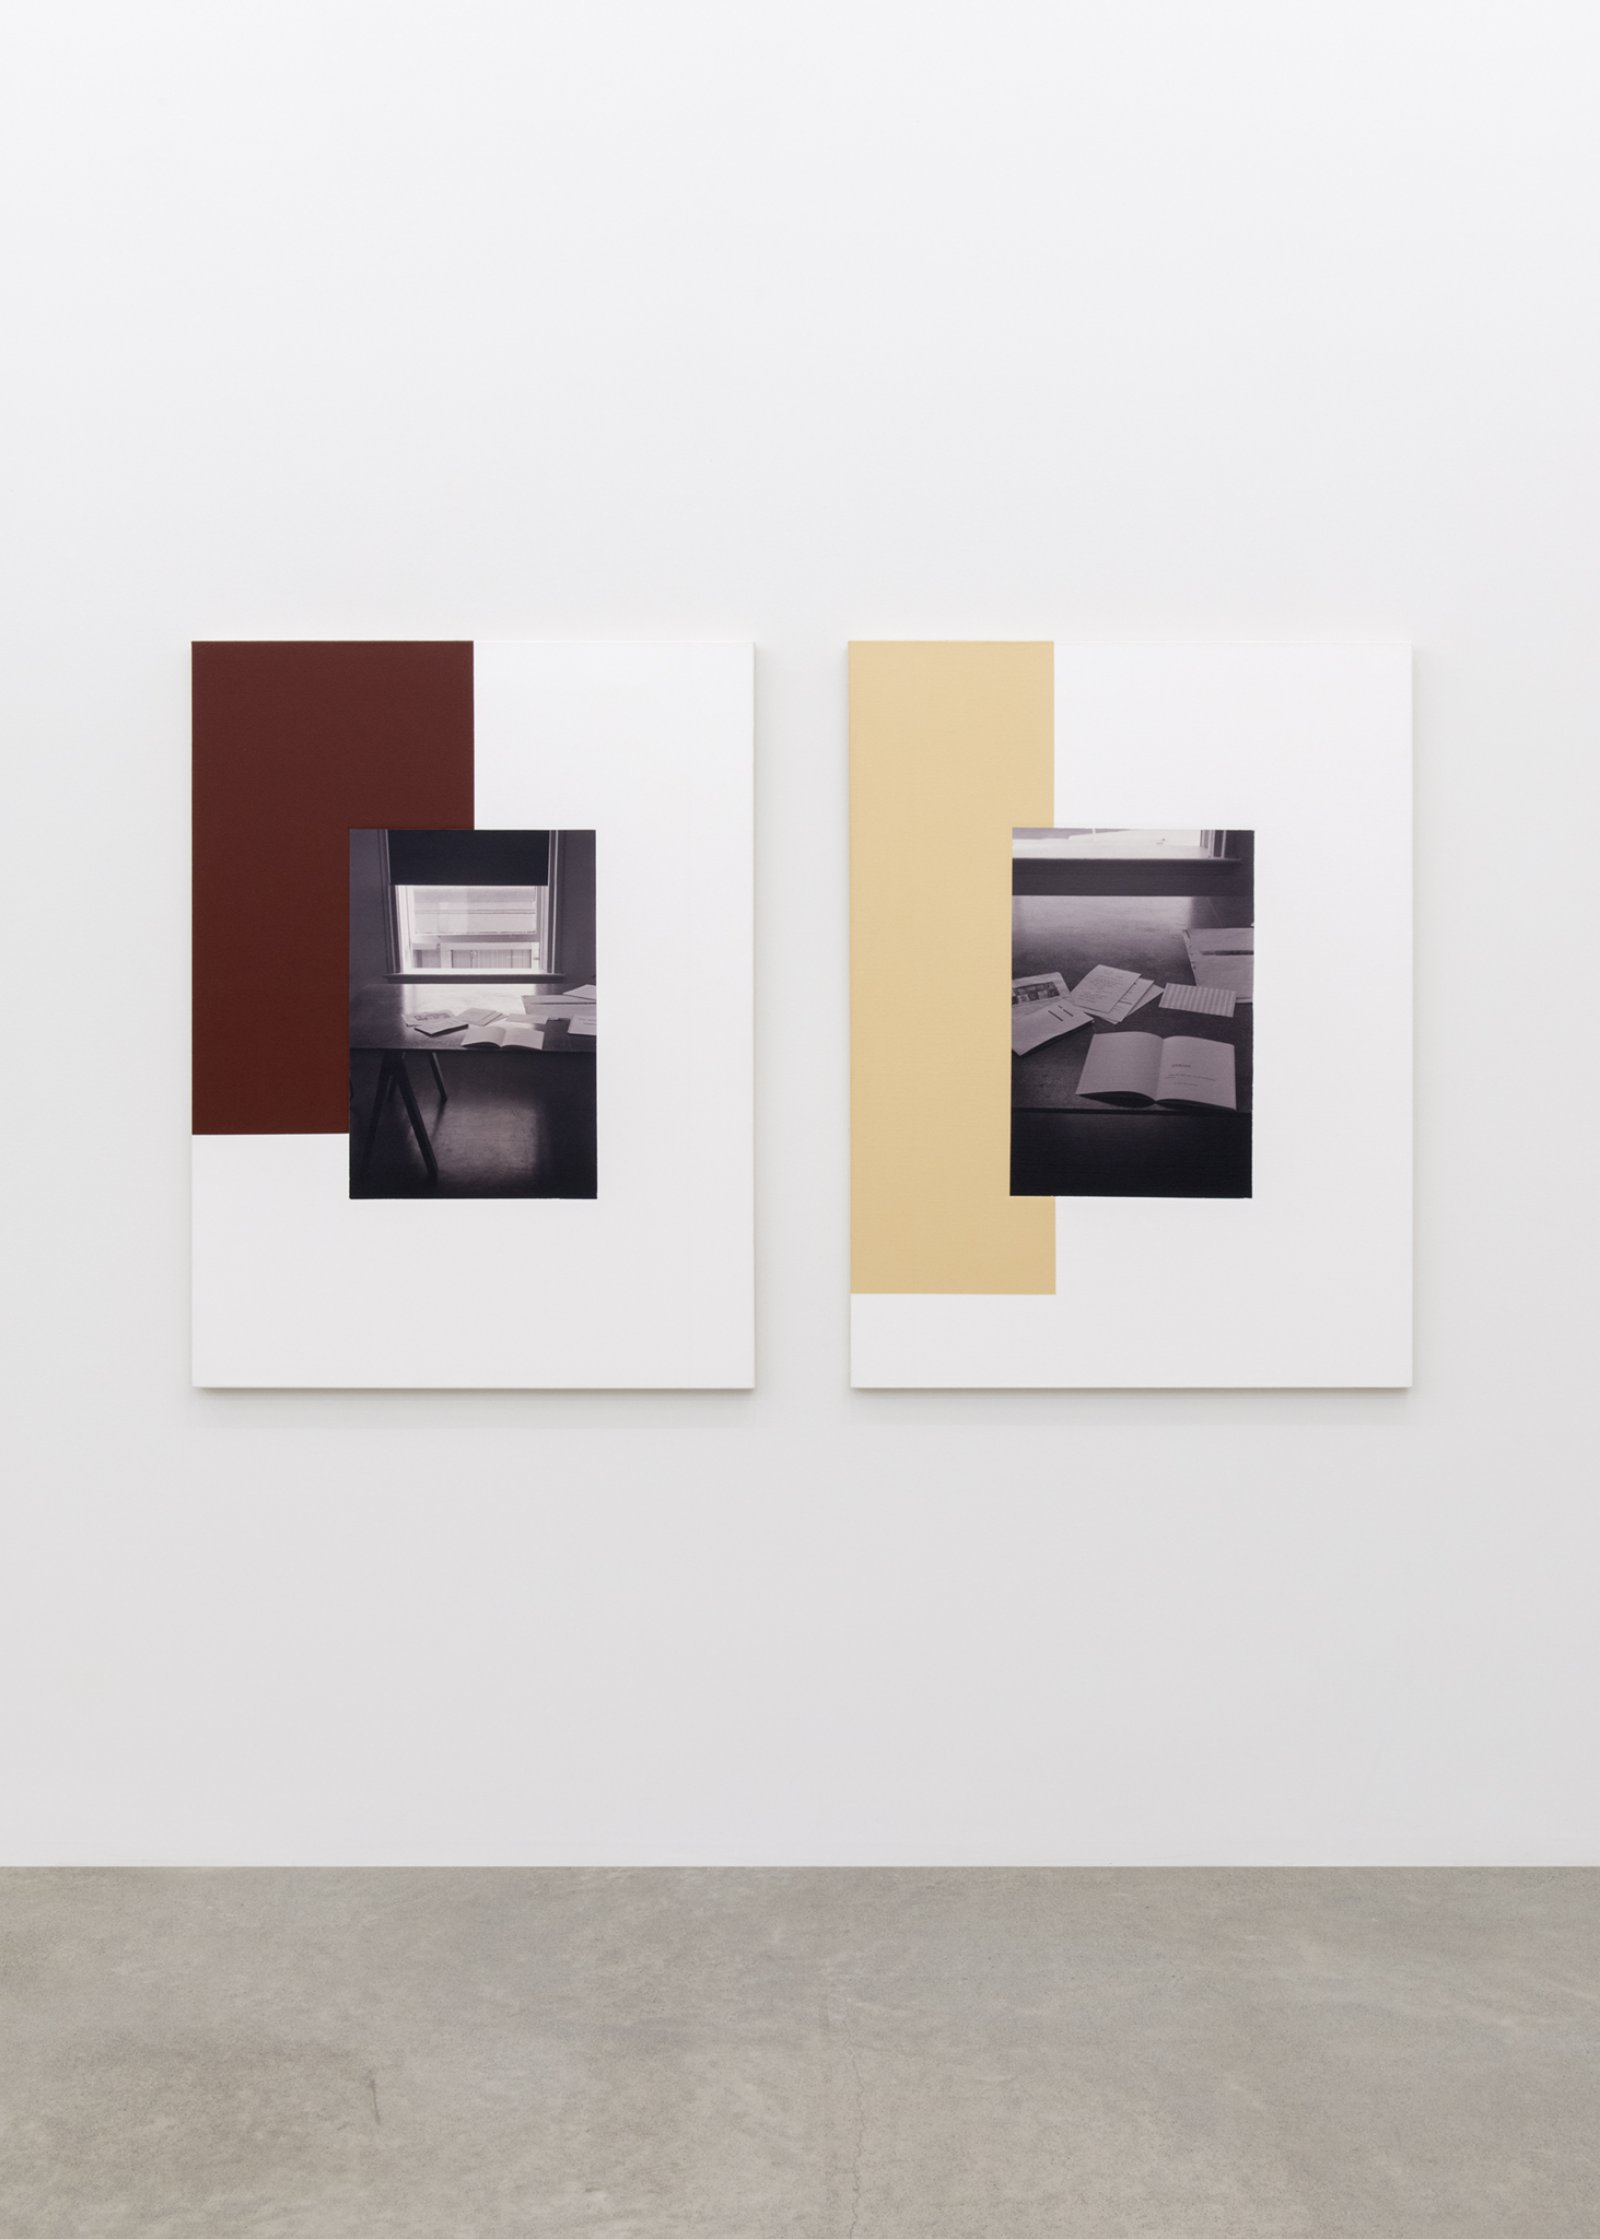 Ian Wallace, The Table (Image/Text) I, II, 1979–2007, photolaminate and acrylic on canvas, each 48 x 72 in. (122 x 183 cm)